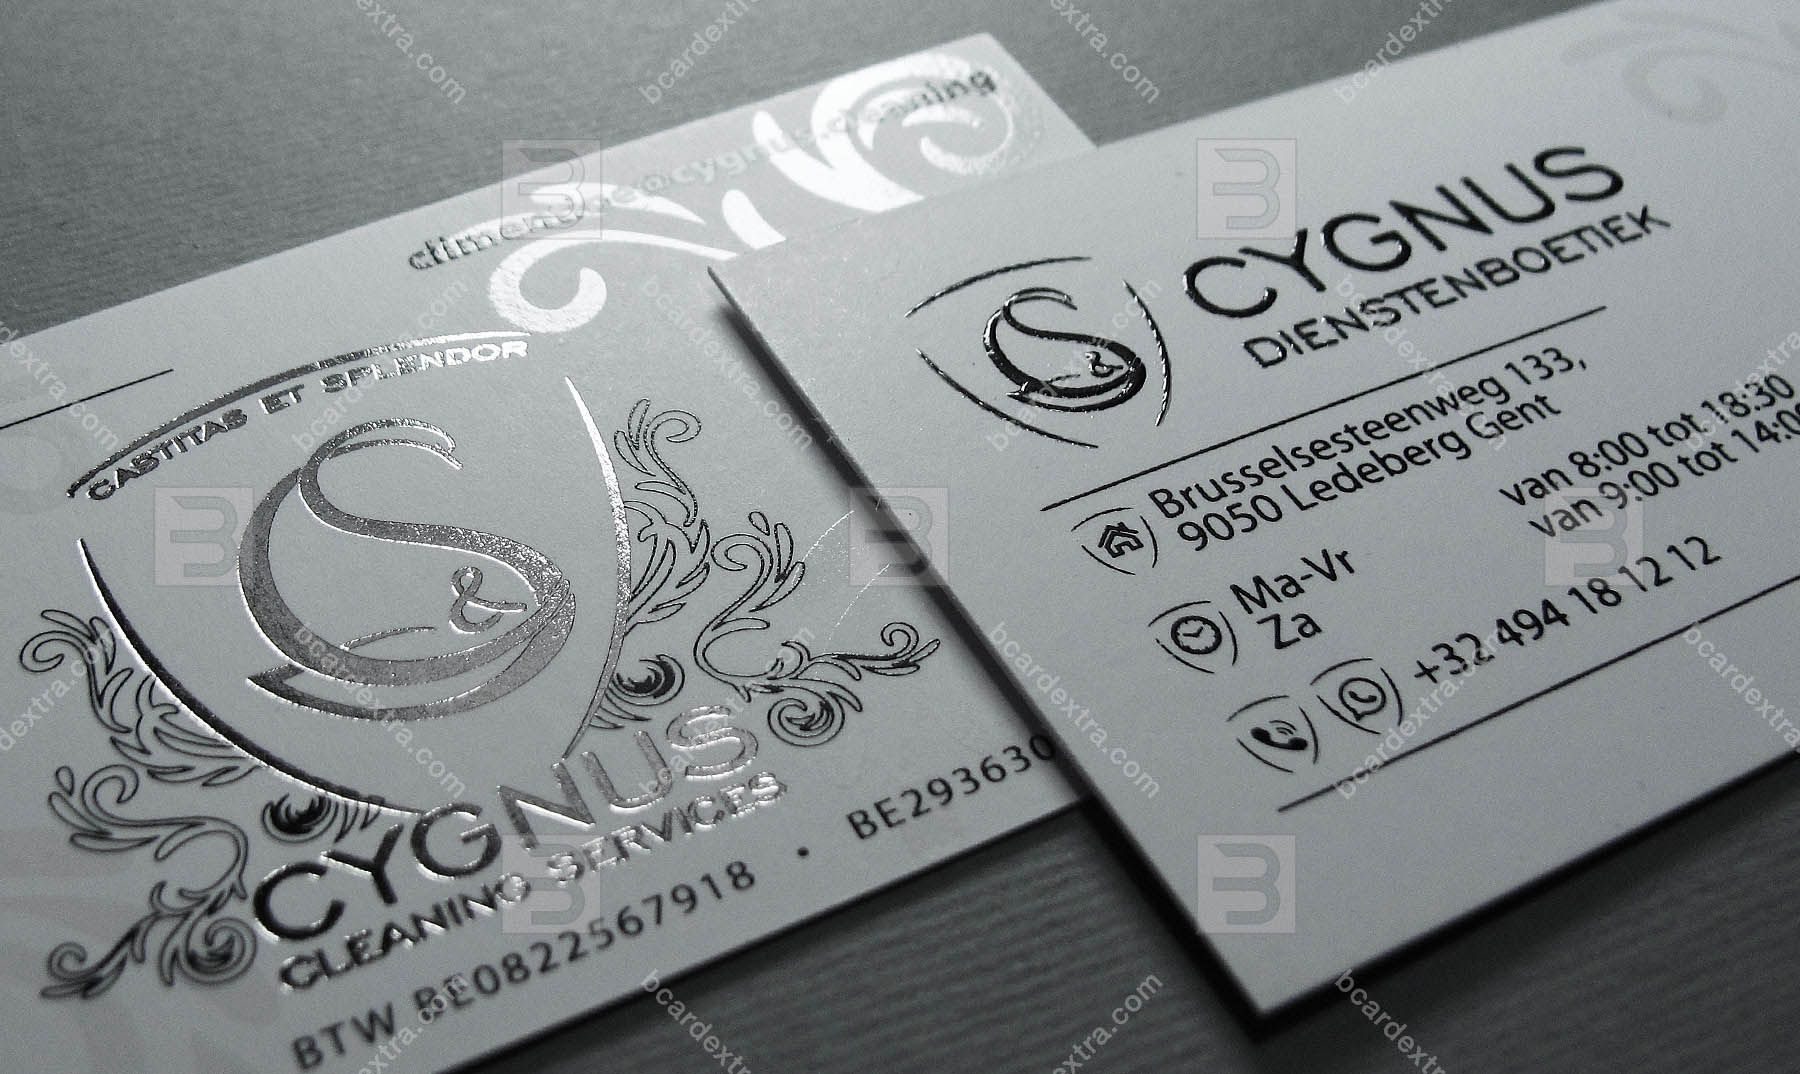 Business Card Cygnus Cleaning Service Company Printing Business Cards Luxury Business Cards Order Business Cards